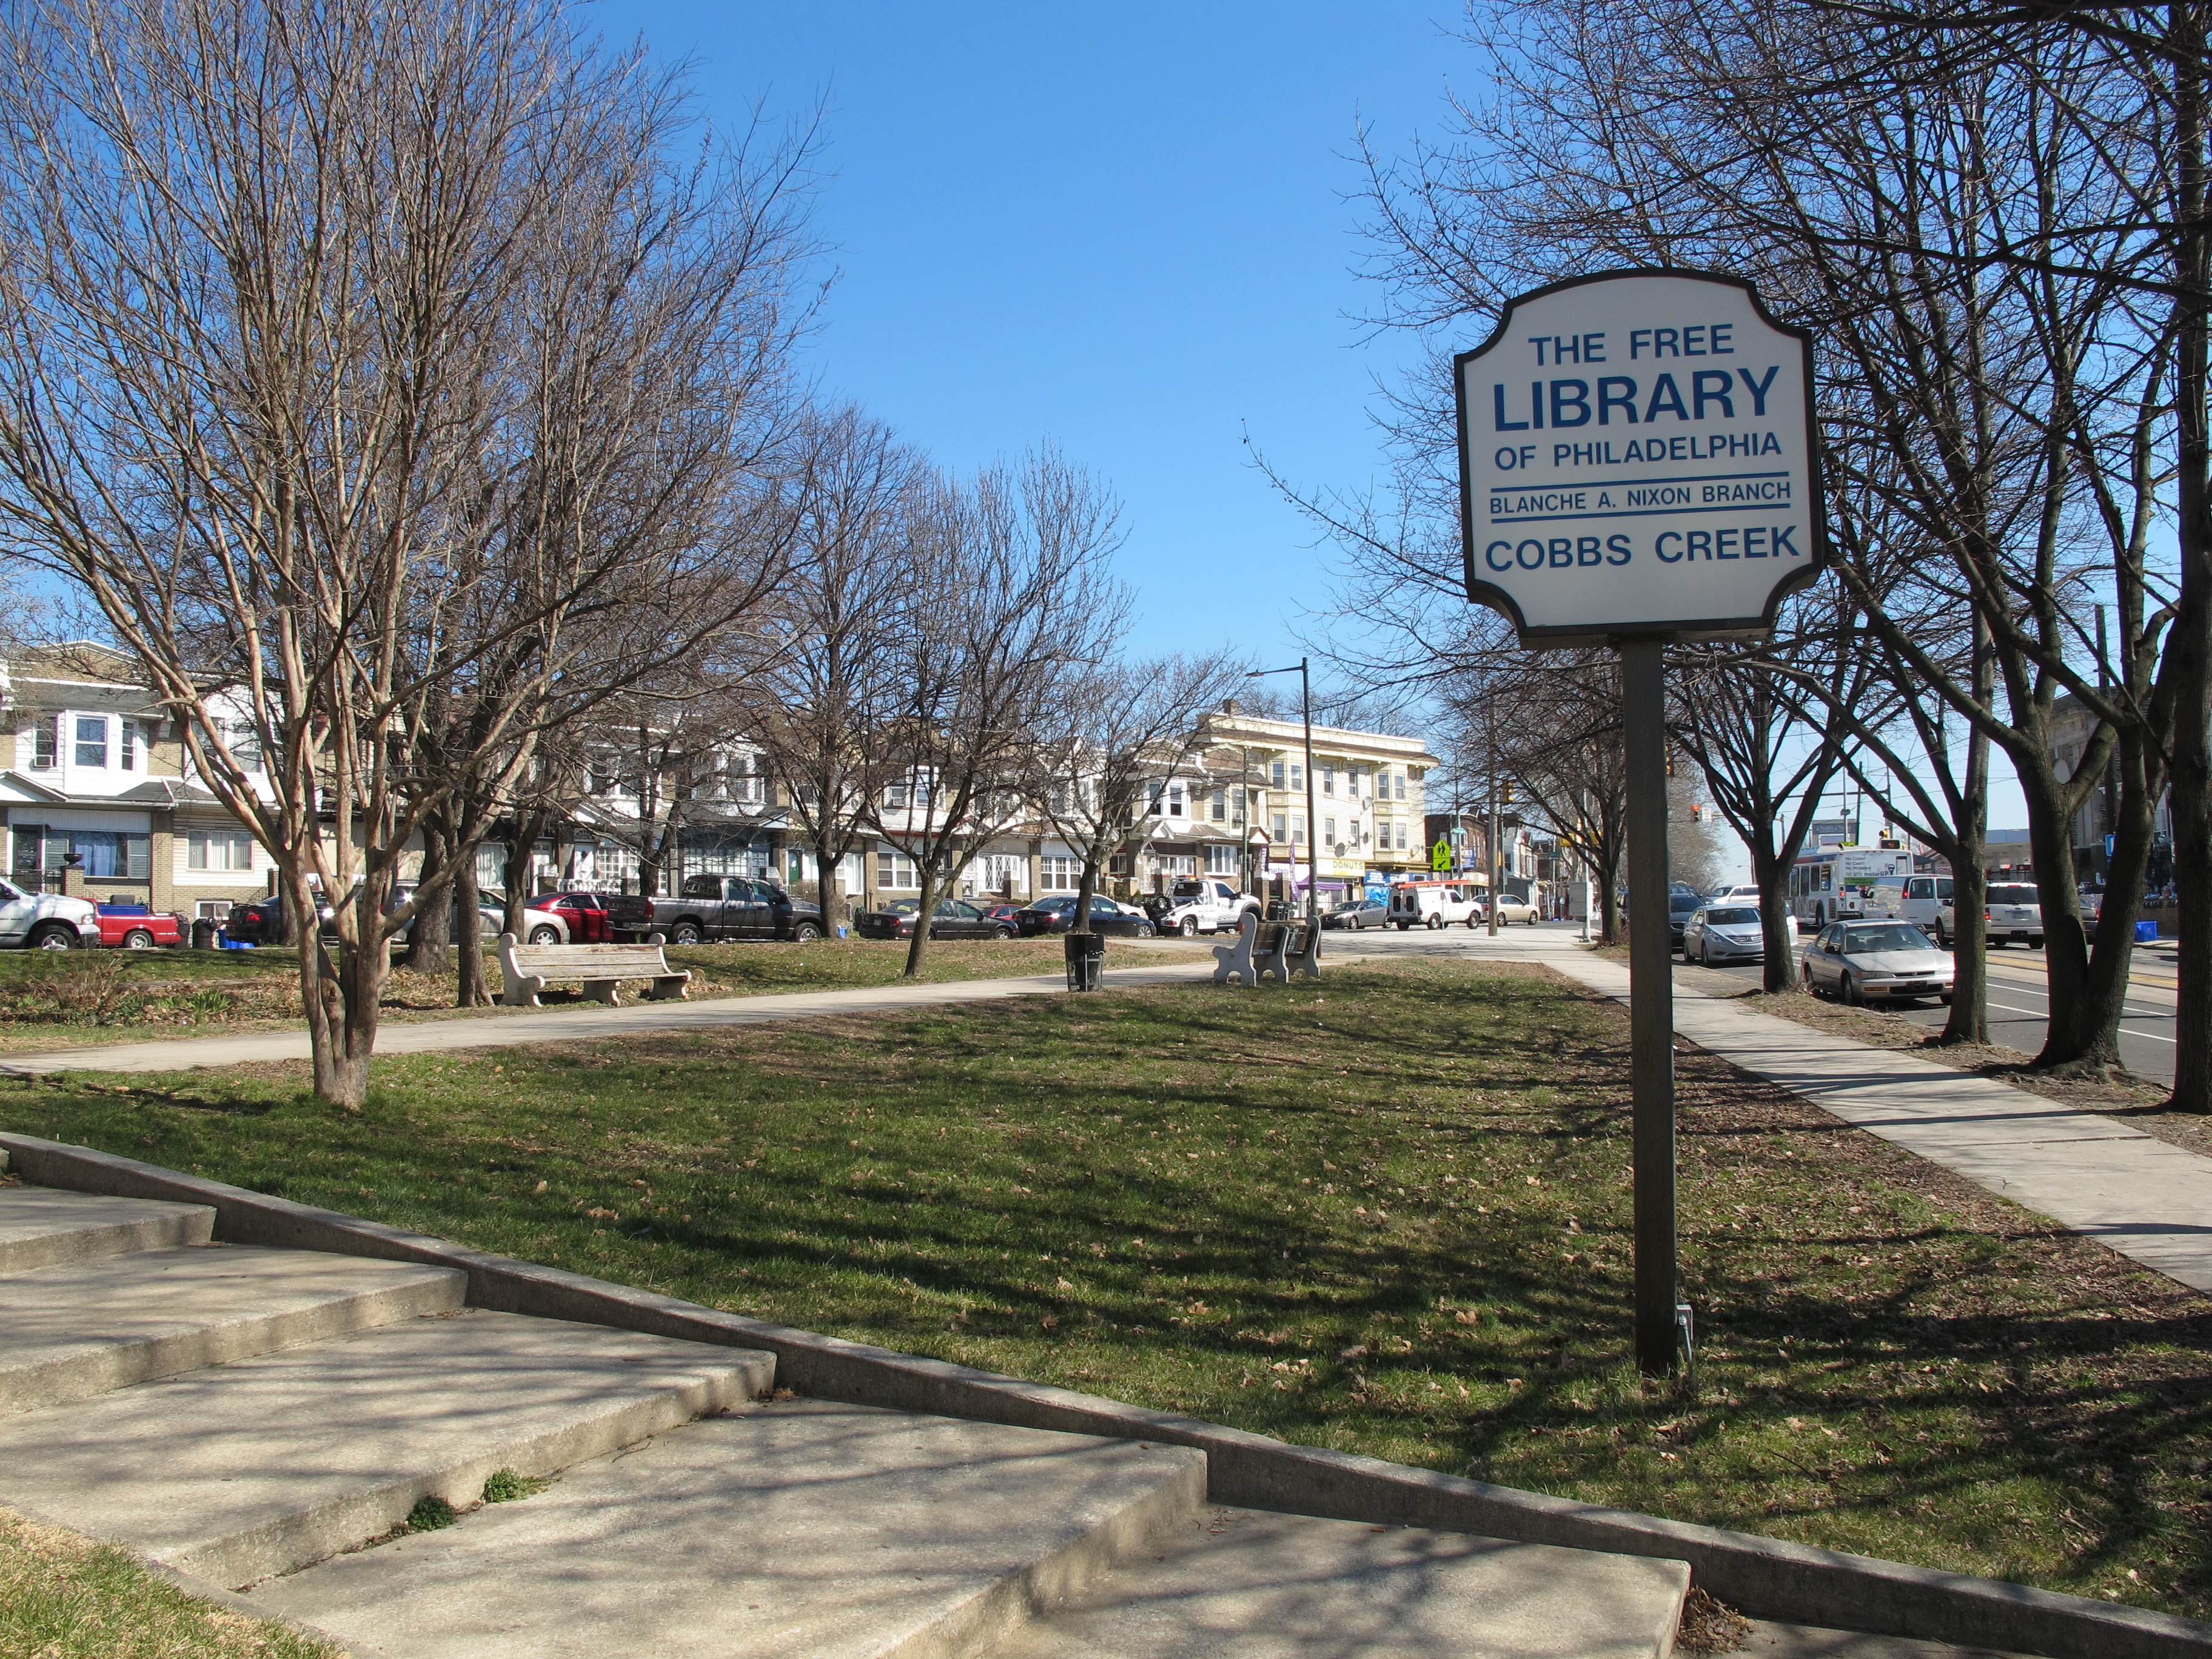 Learning Landscapes: Blanche A. Nixon / Cobbs Creek Branch Library